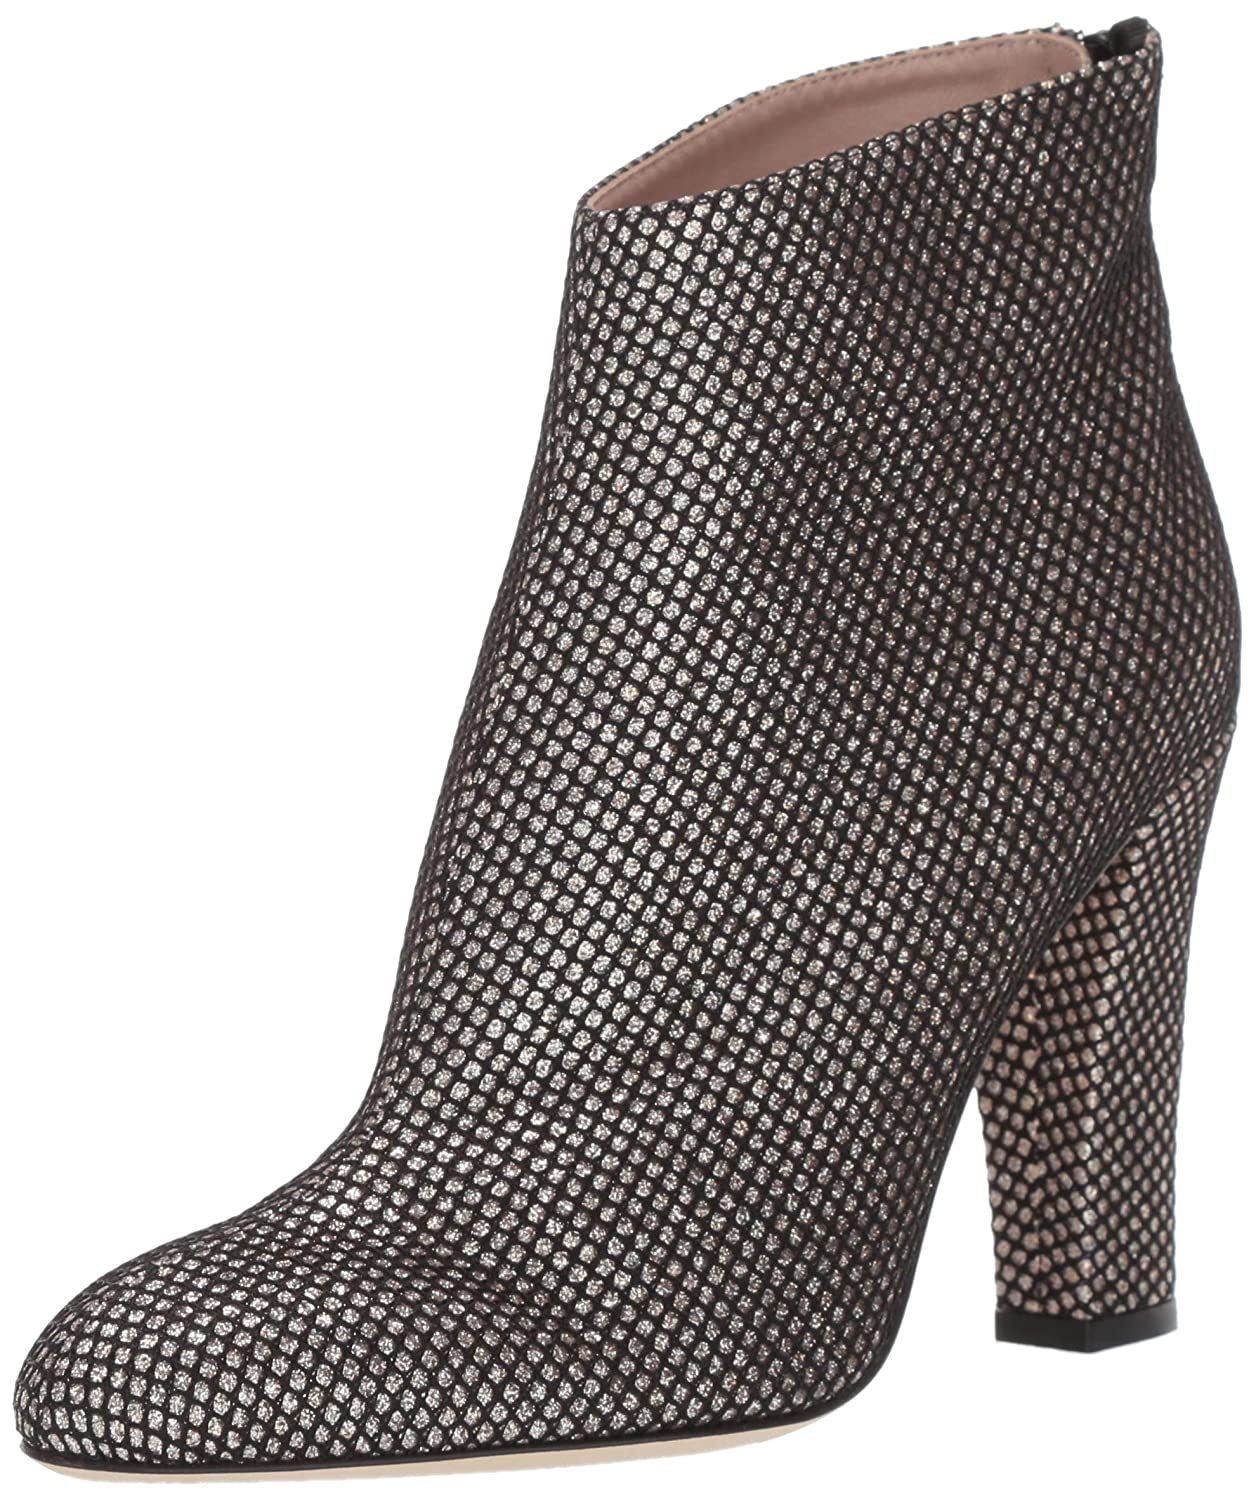 Tulle SJP by Sarah Jessica Parker Women's Minnie Ankle Bootie